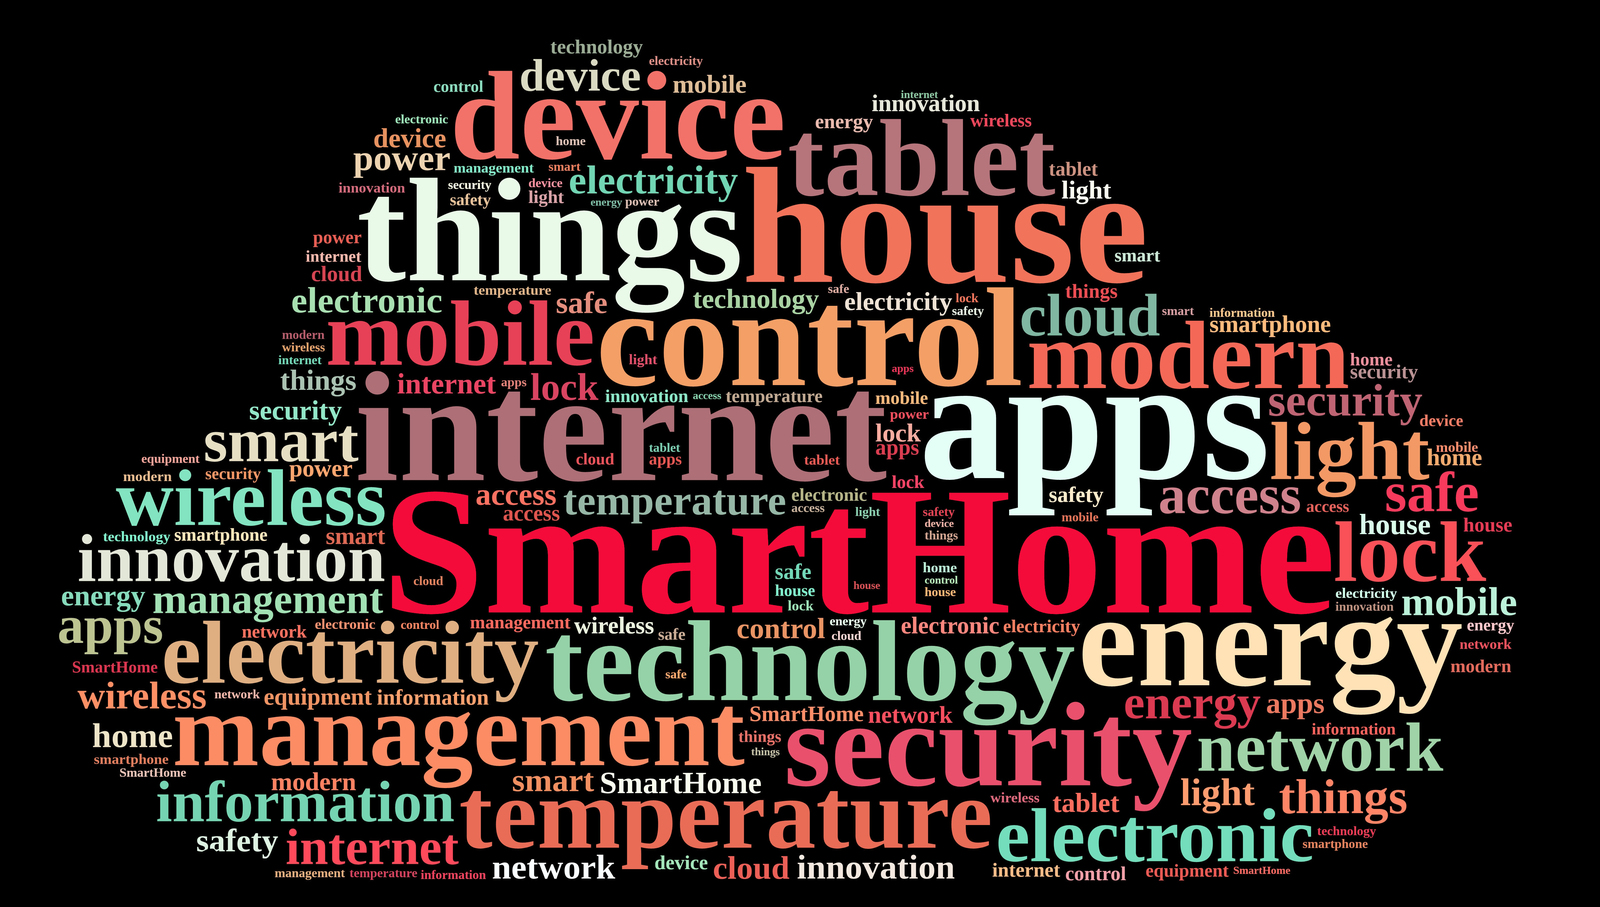 scottsdale home with smart tech words